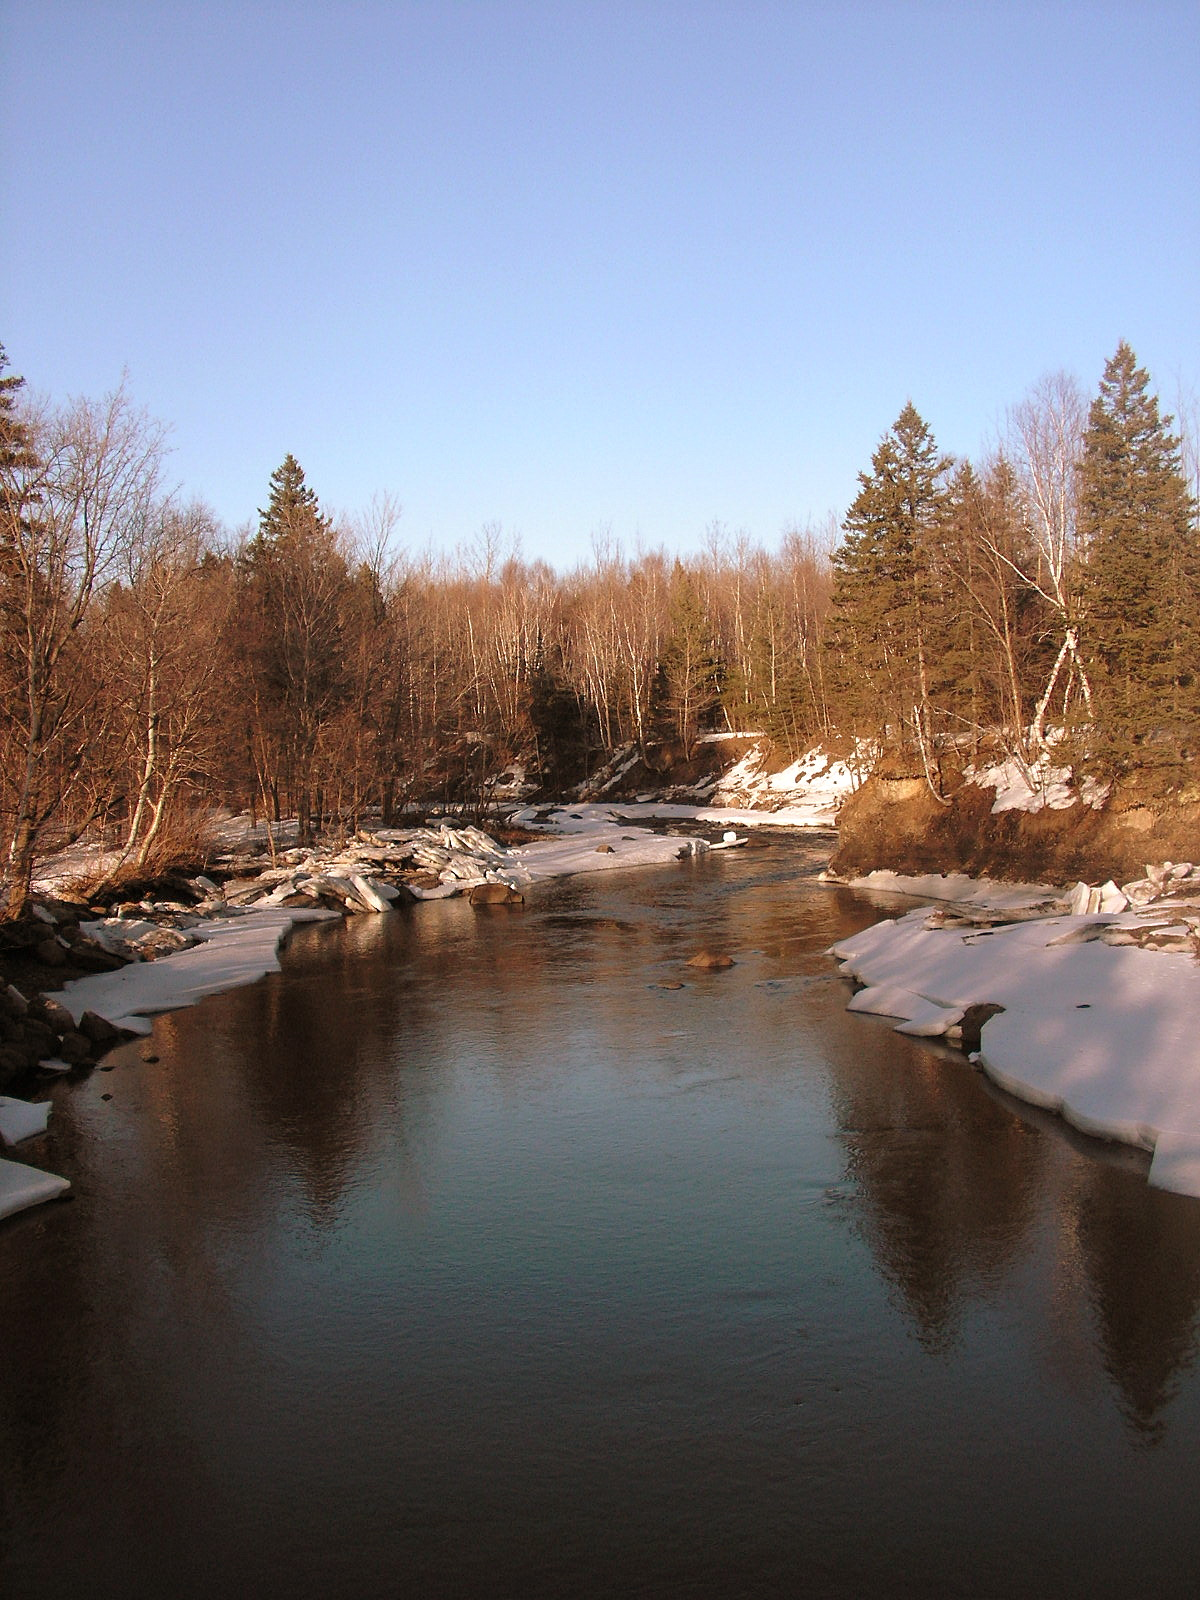 River at the End of Winter by JocelyneR